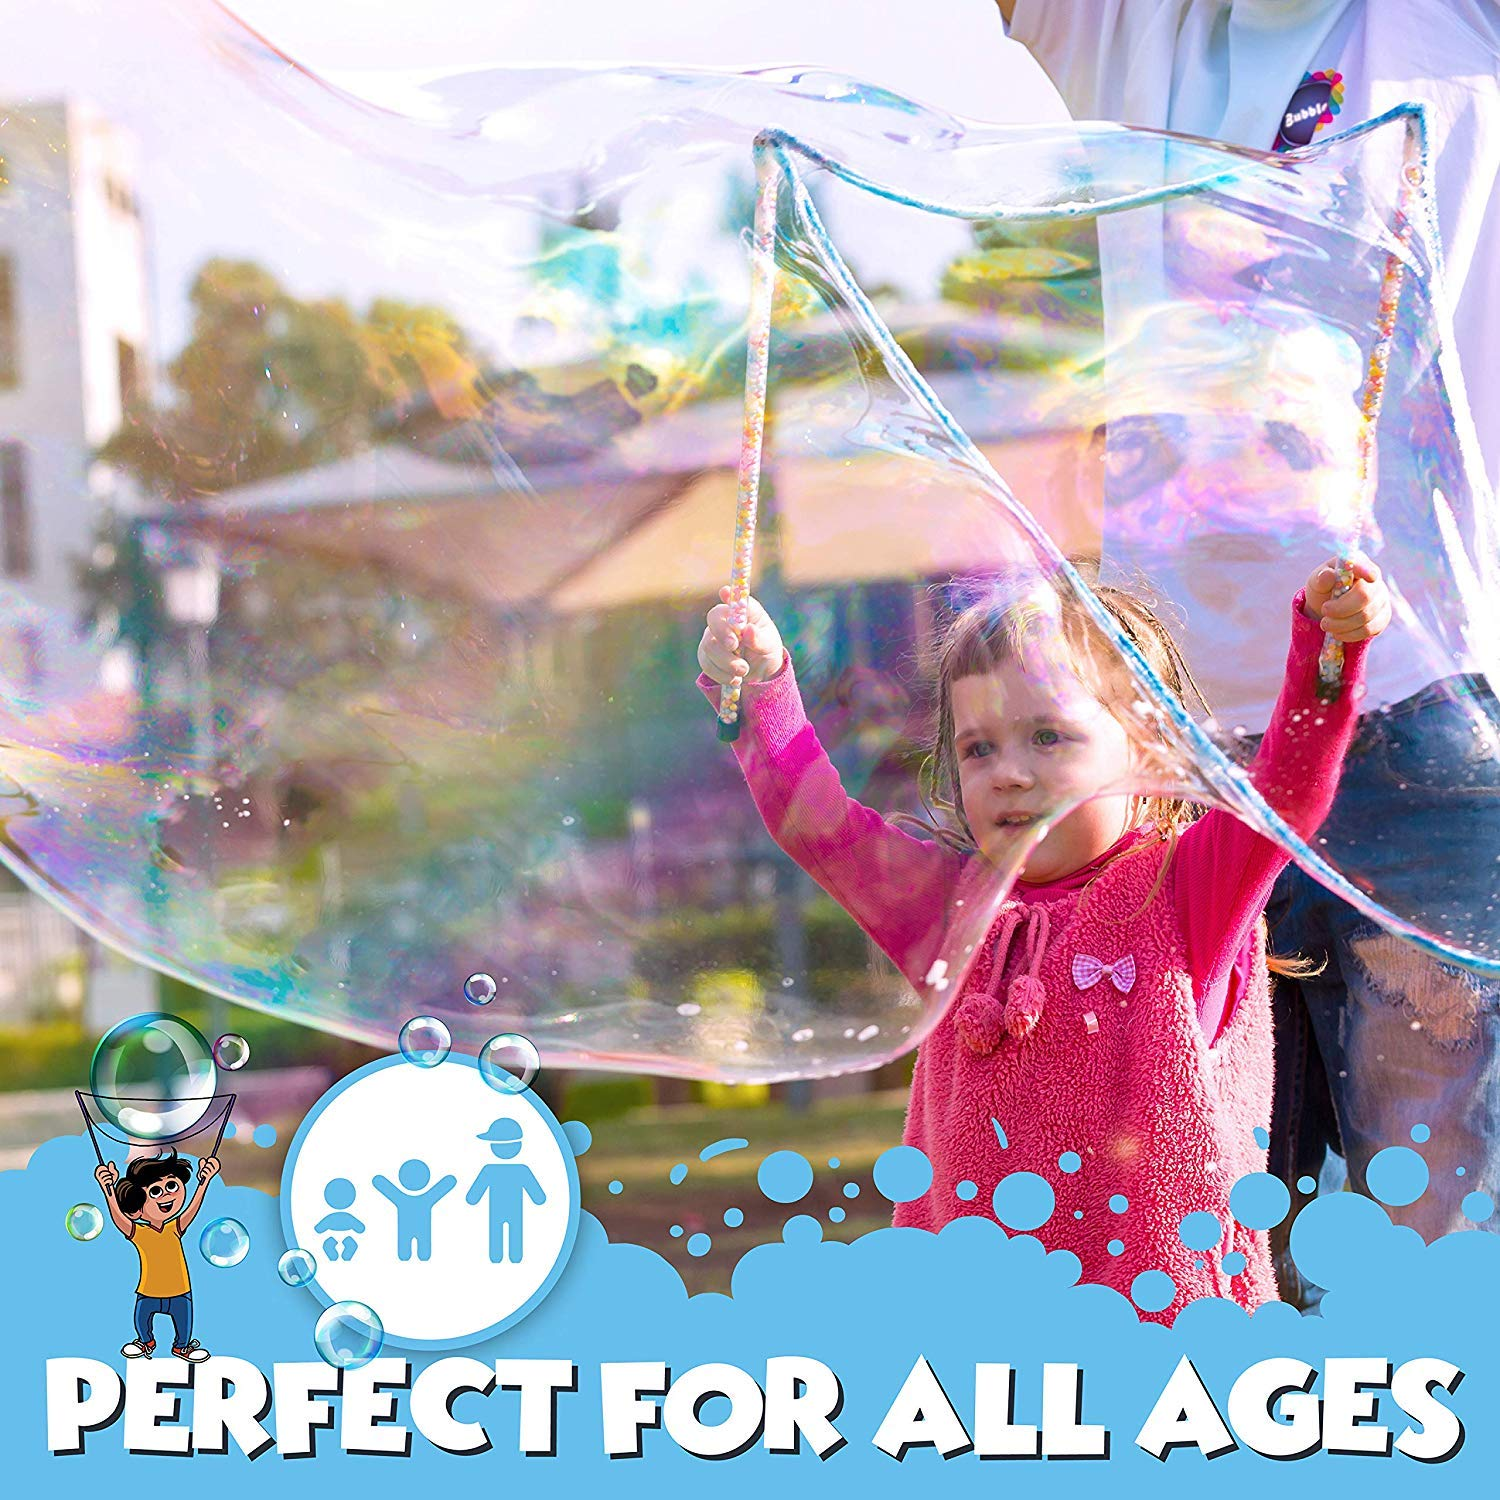 BIGBUA Giant Bubbles For Kids - Complete Fun Bubble Making Set. The Perfect Outdoor Toys for the Entire Family. 3-Piece Set Incl. Bubble Wand, Mini Hoop and Mixing Powder